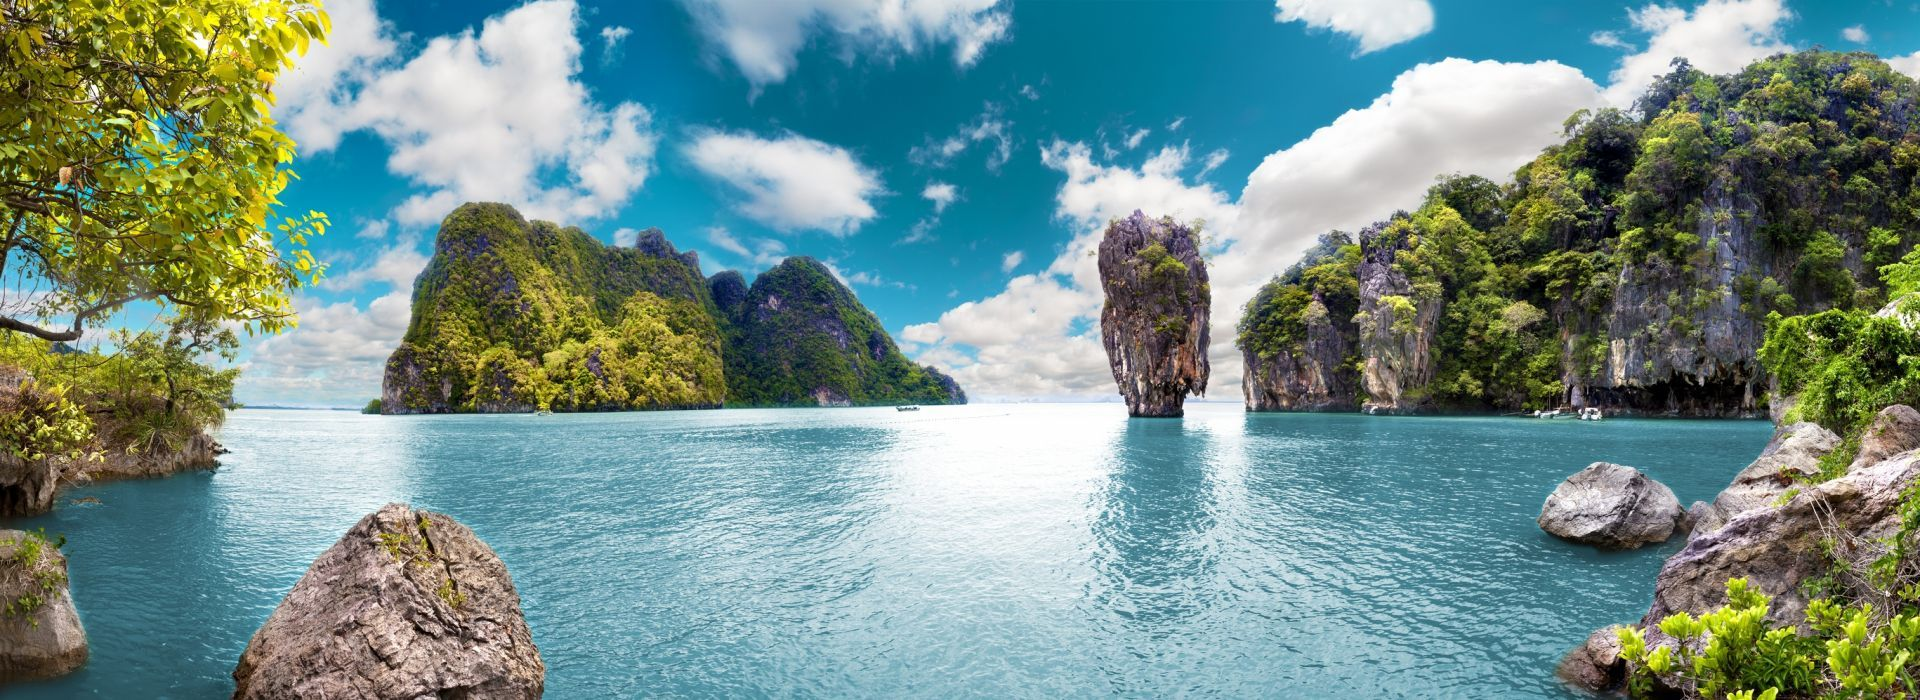 Beach, romance, getaways and relaxation Tours in Phuket